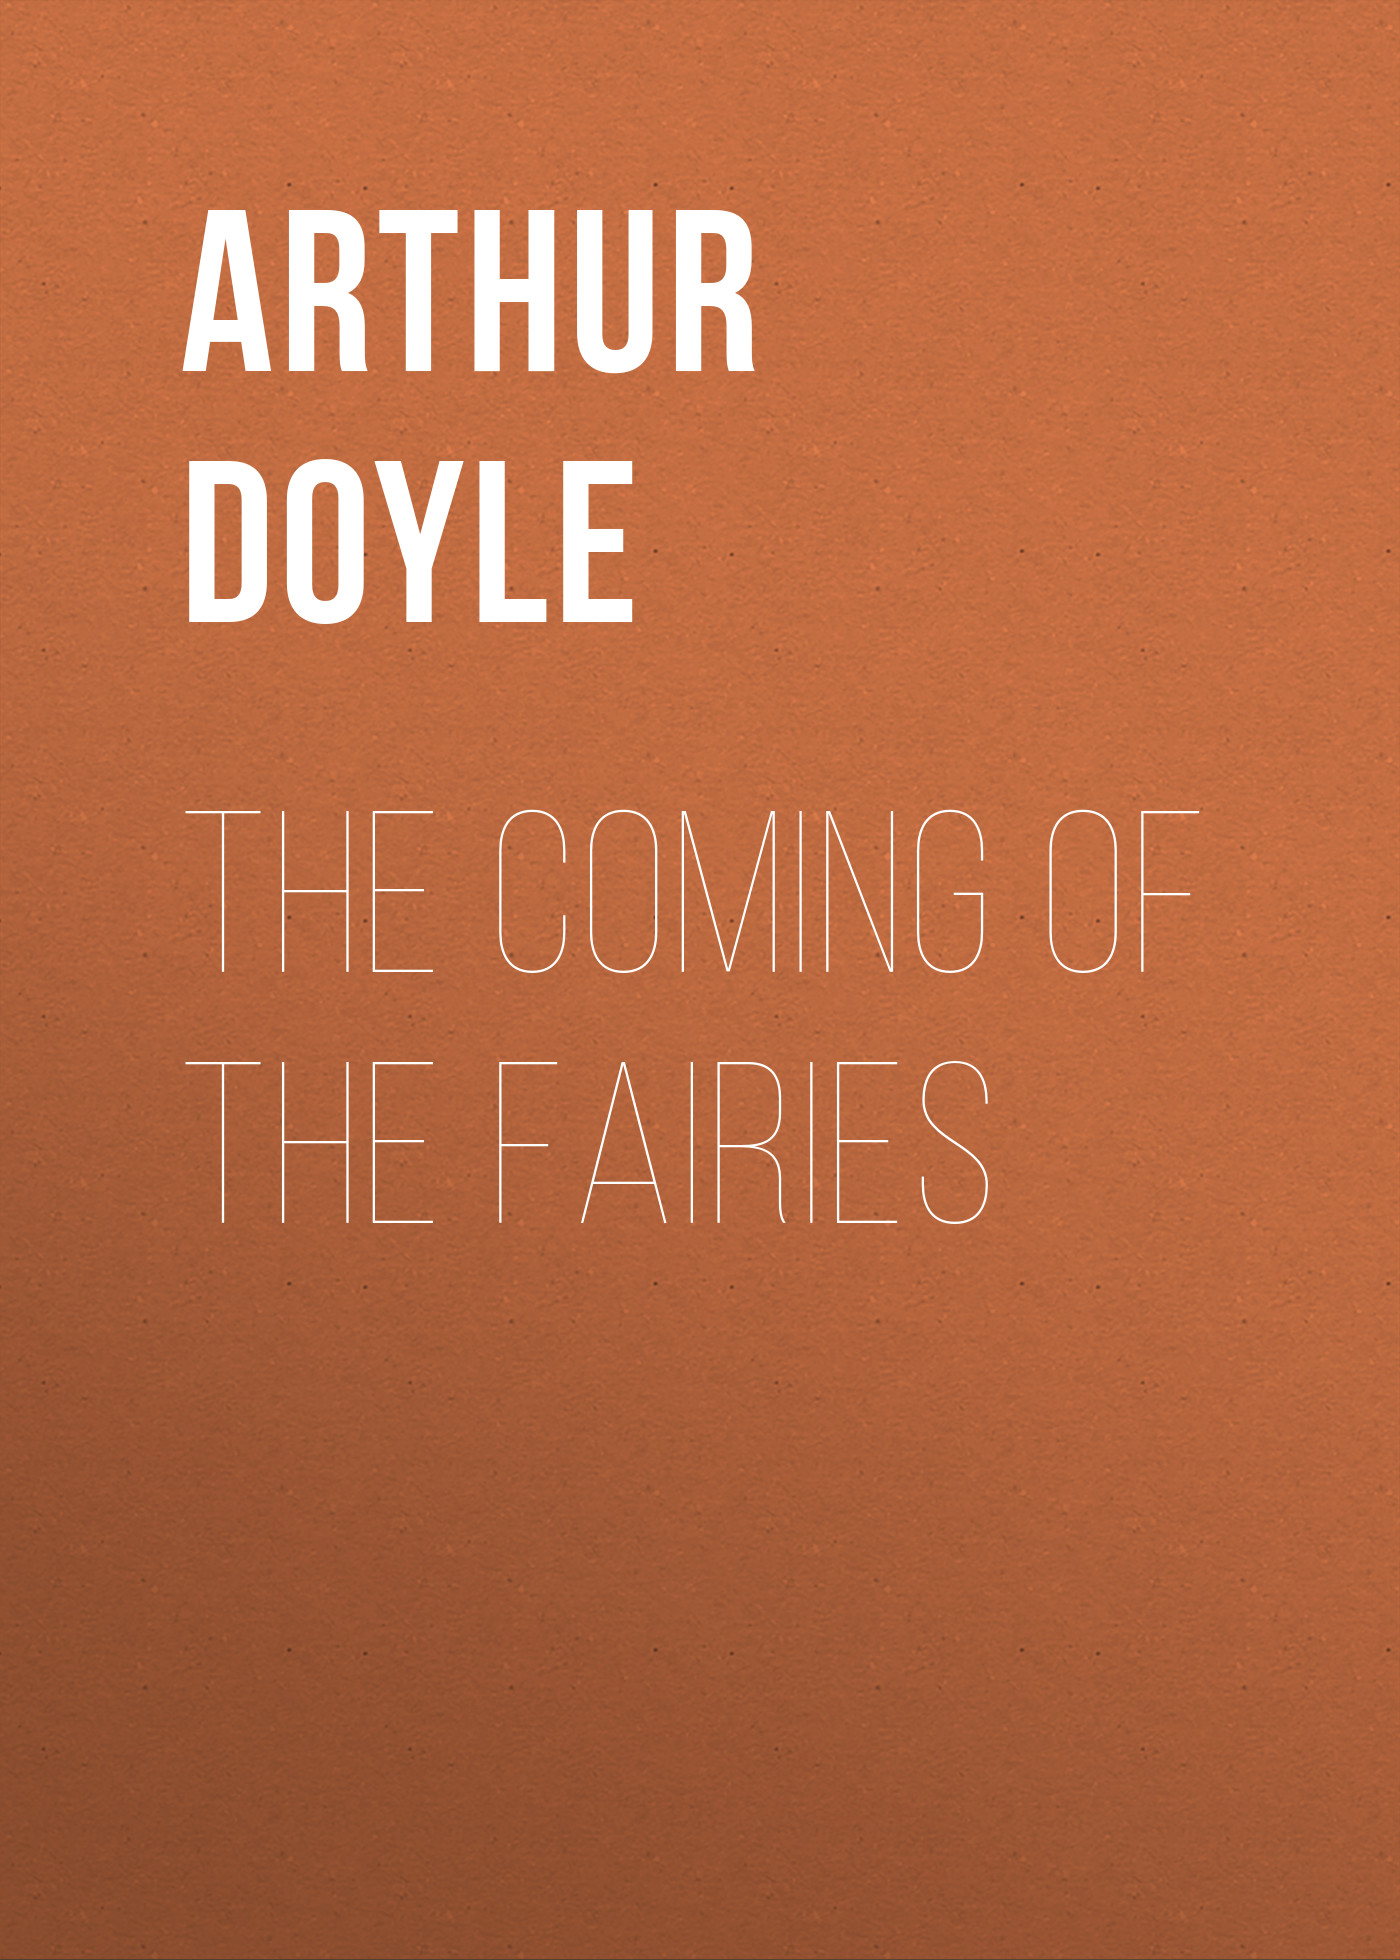 Doyle Arthur Conan The Coming of the Fairies doyle arthur conan the coming of the fairies